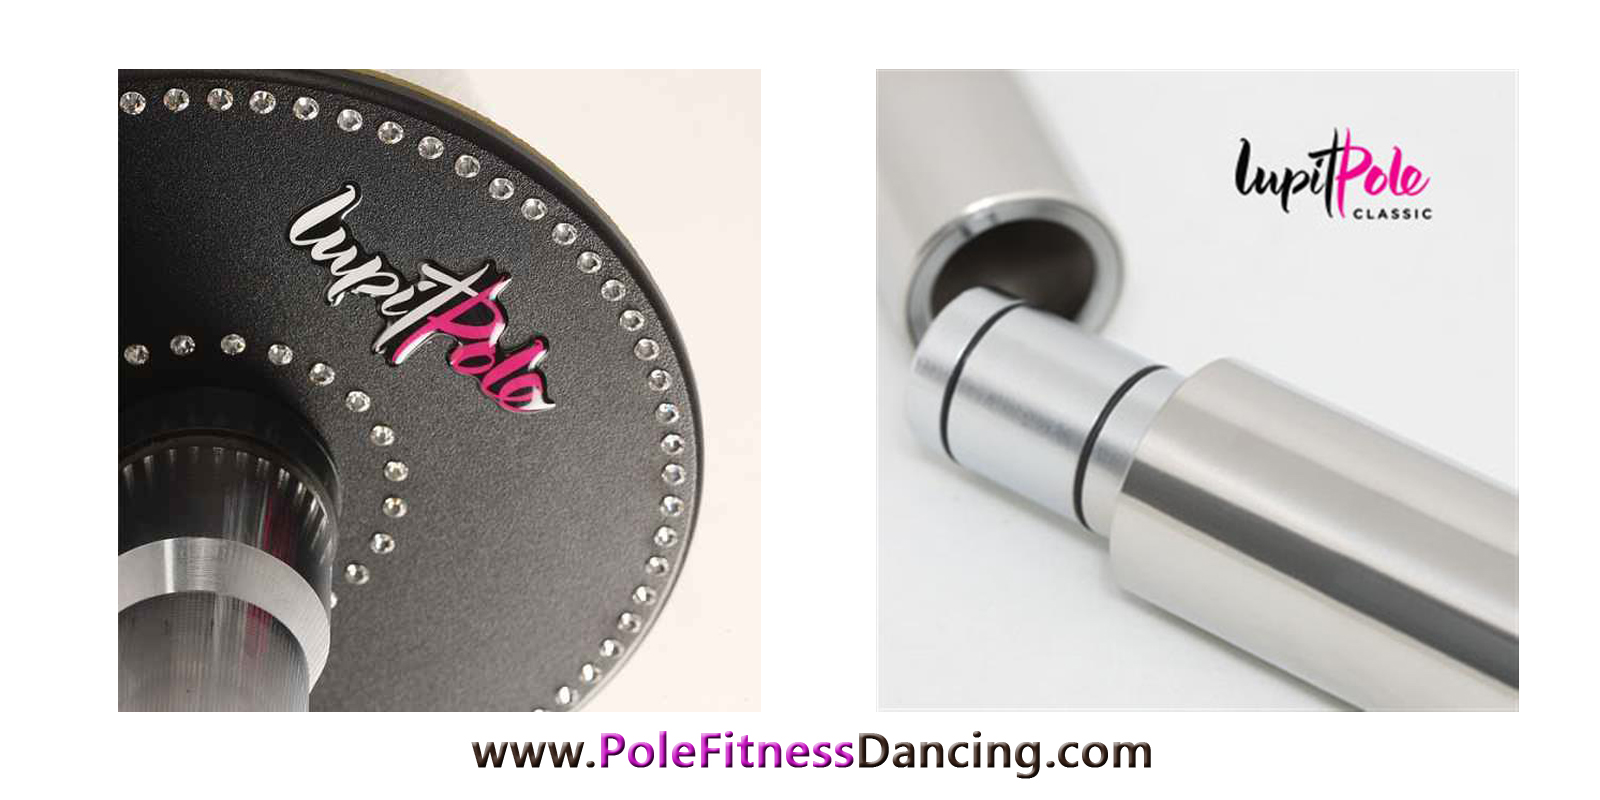 New Lupit Classic DIAMOND Dance Pole Review! **SAVE 10%** Easiest Pole To Get Up & Down!